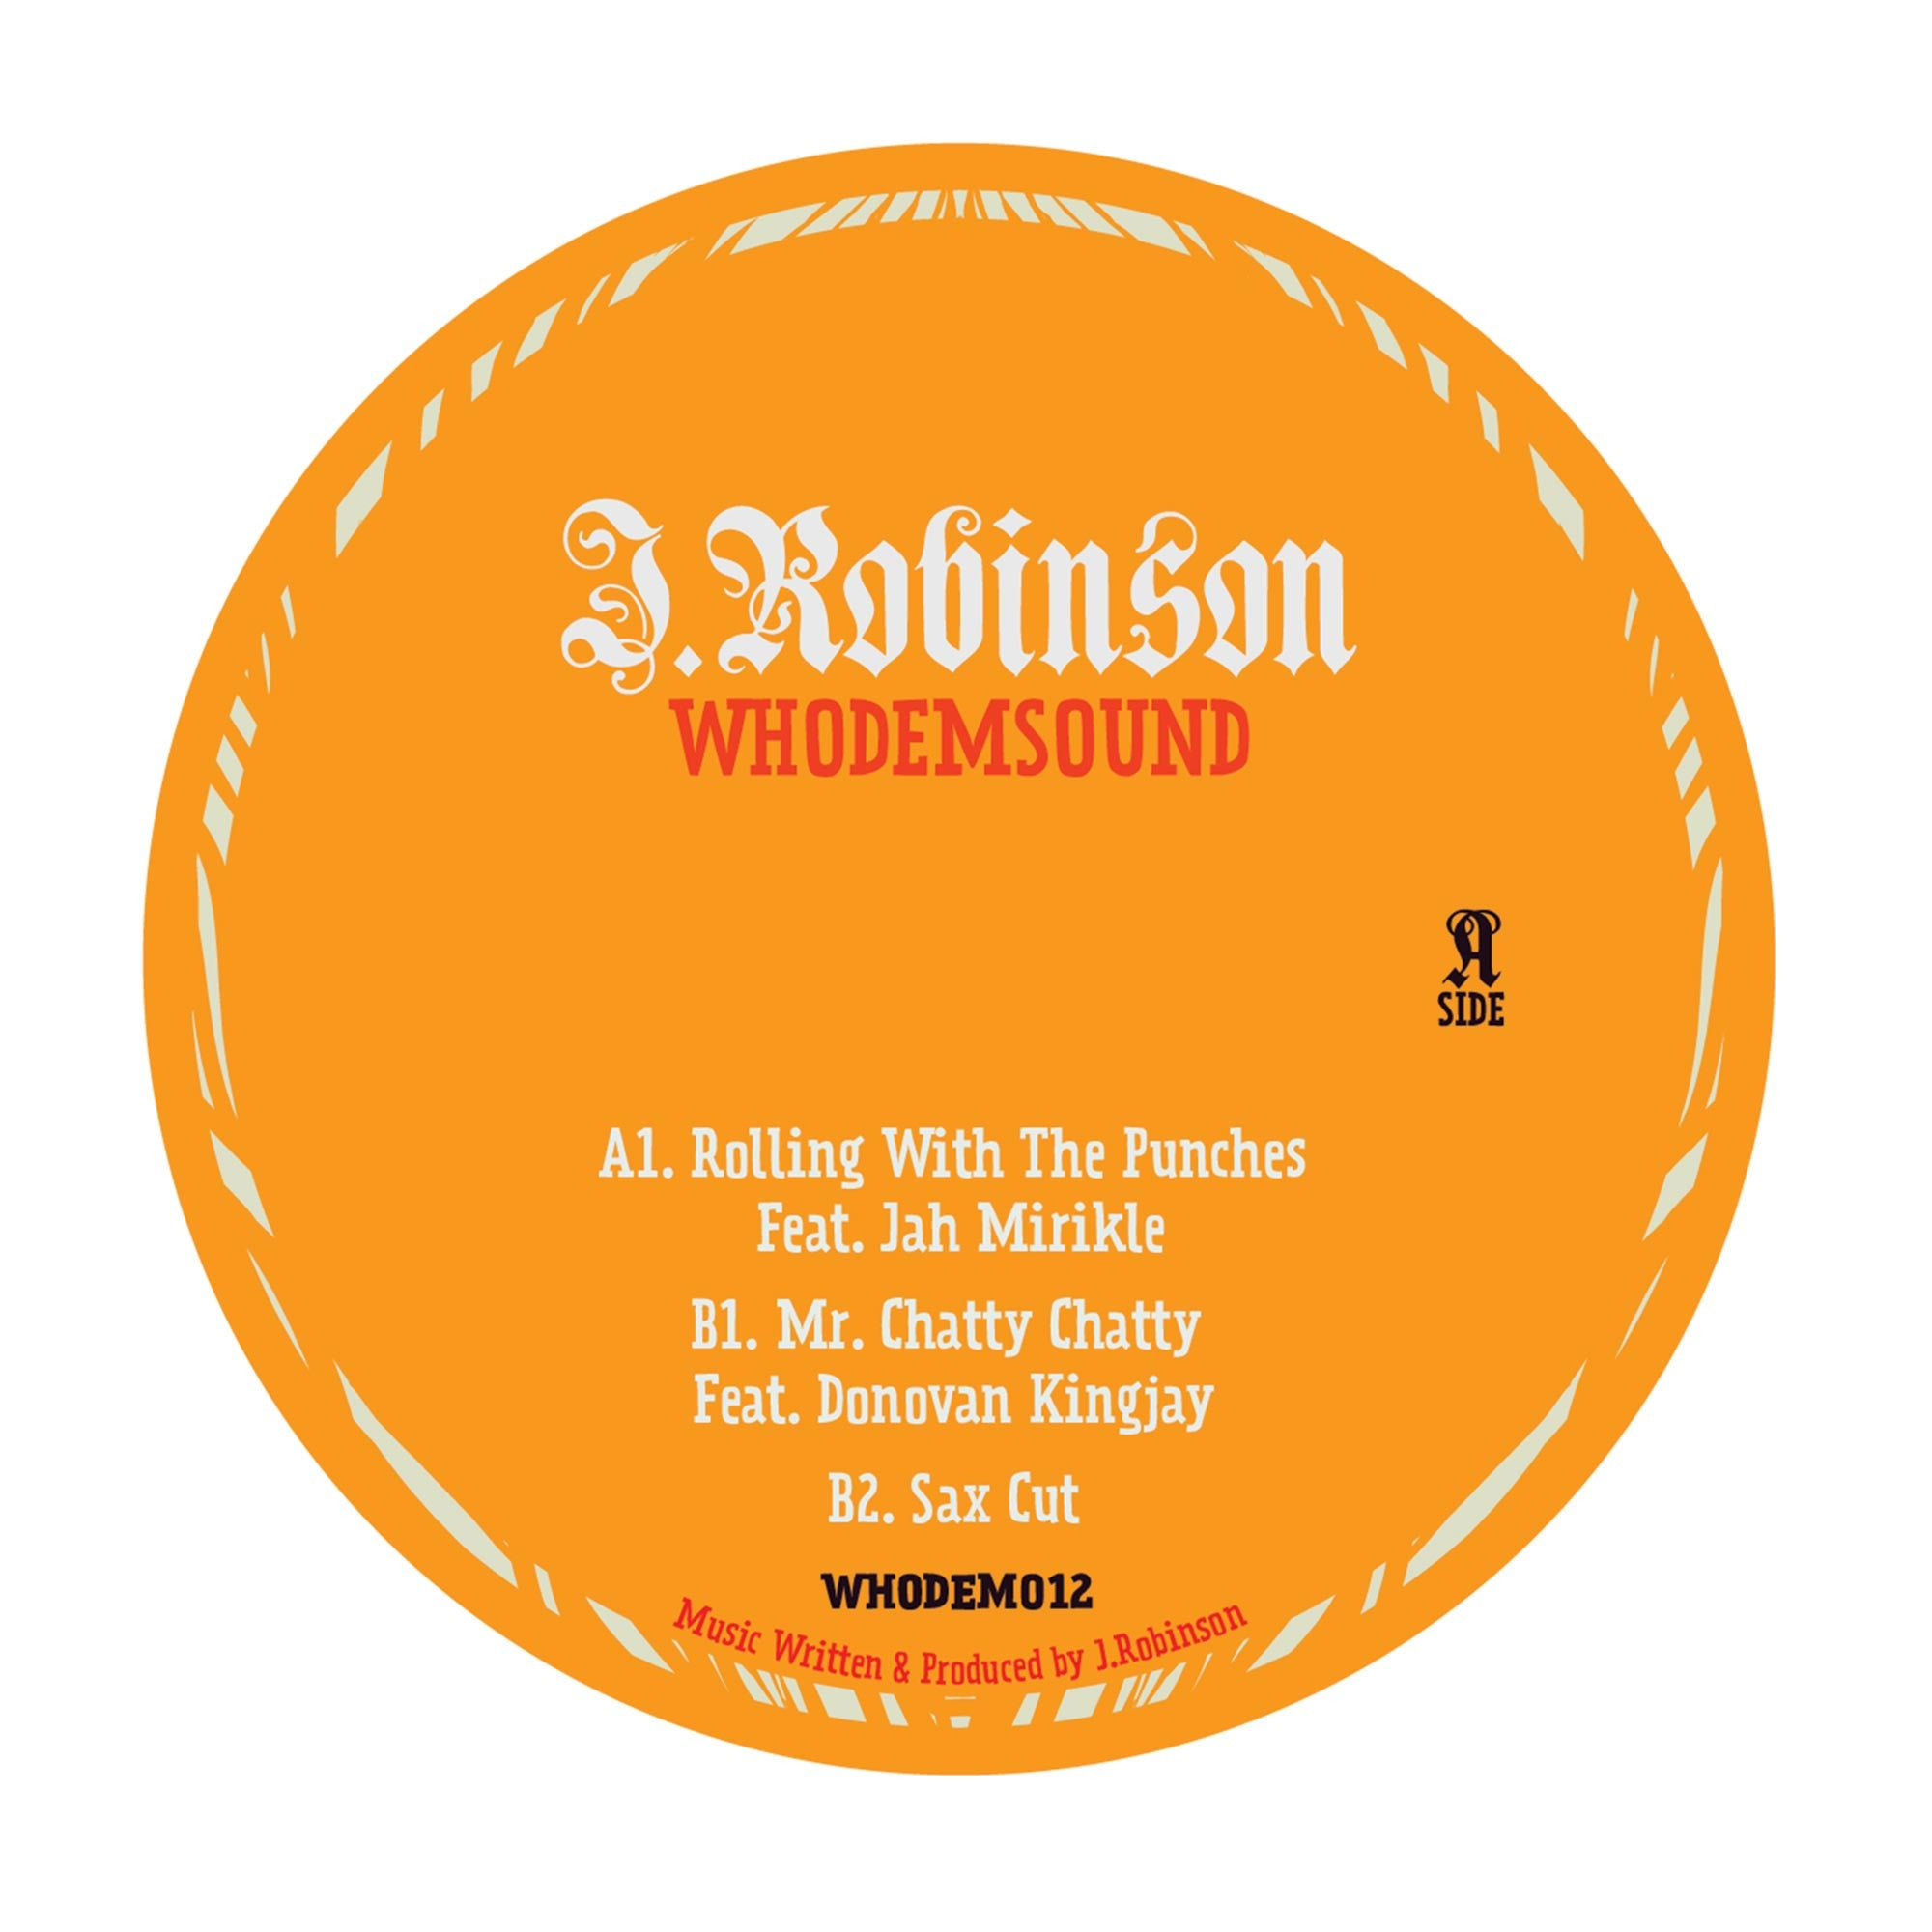 "J.Robinson WhoDemSound feat. Jah Mirikle / Donovan Kingjay [Ltd 10"" Vinyl] , Vinyl - WhoDemSound, Unearthed Sounds"